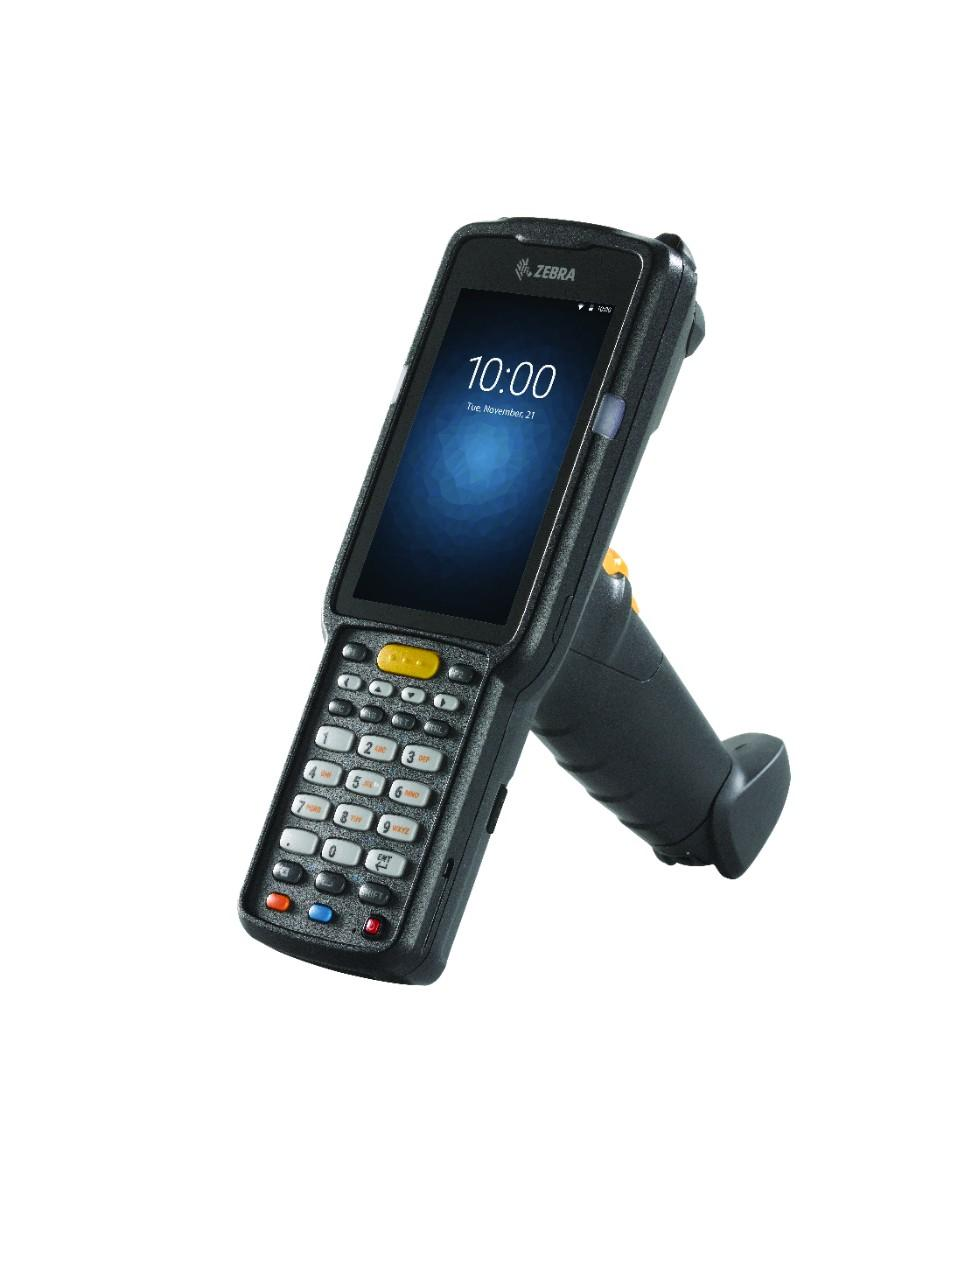 Zebra MC3300 Handheld Mobile Computer